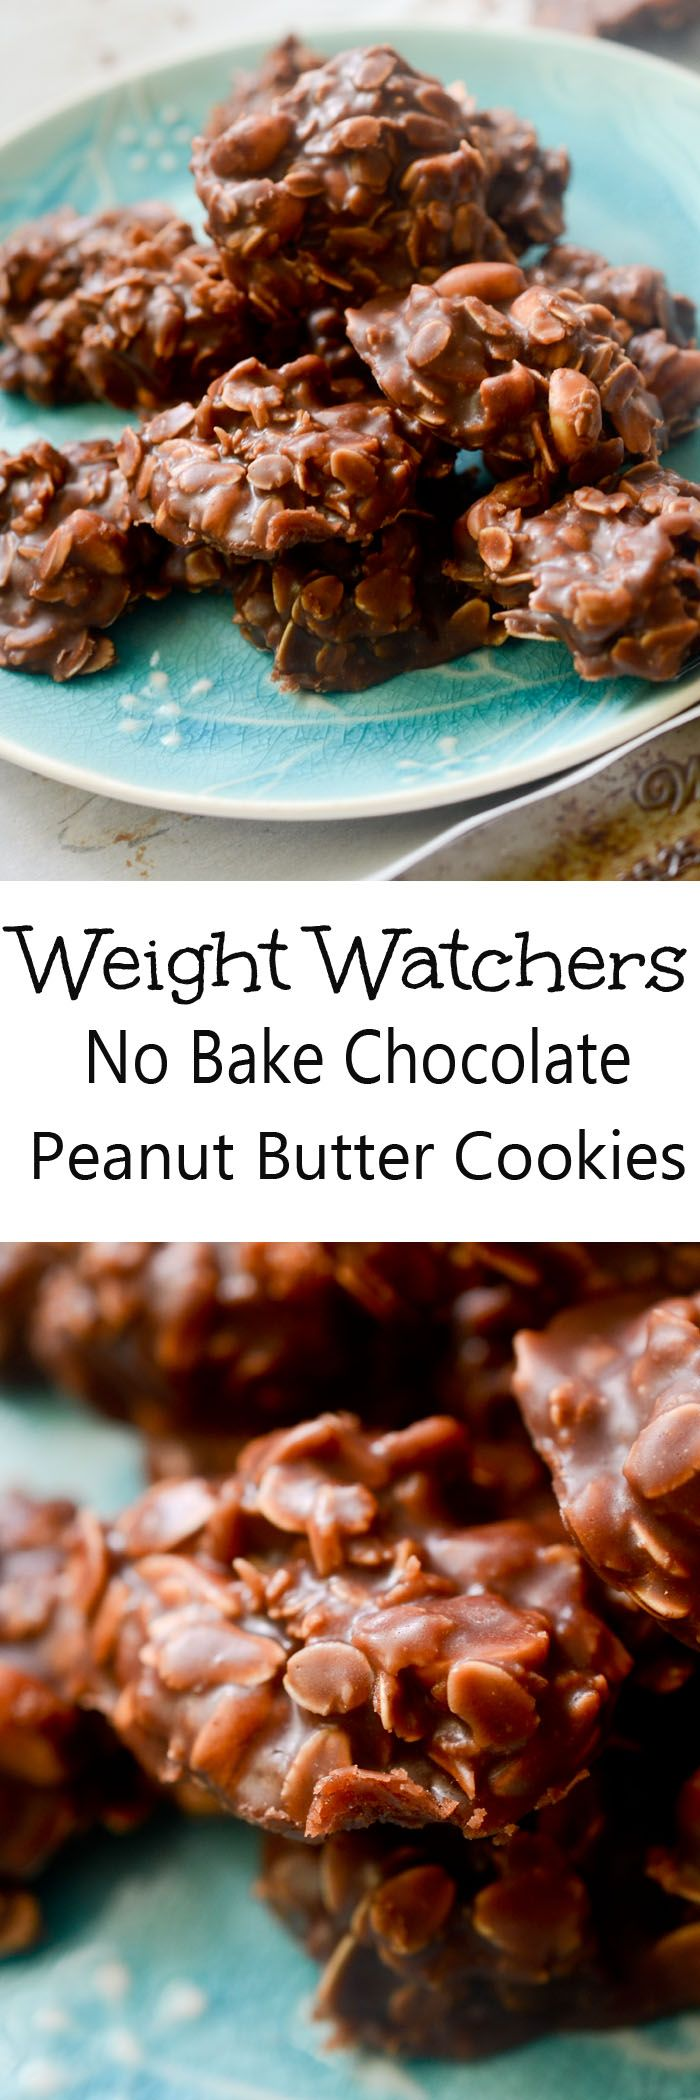 No Bake Chocolate Peanut Butter Cookies - Weight Watcher friendly - Recipe…